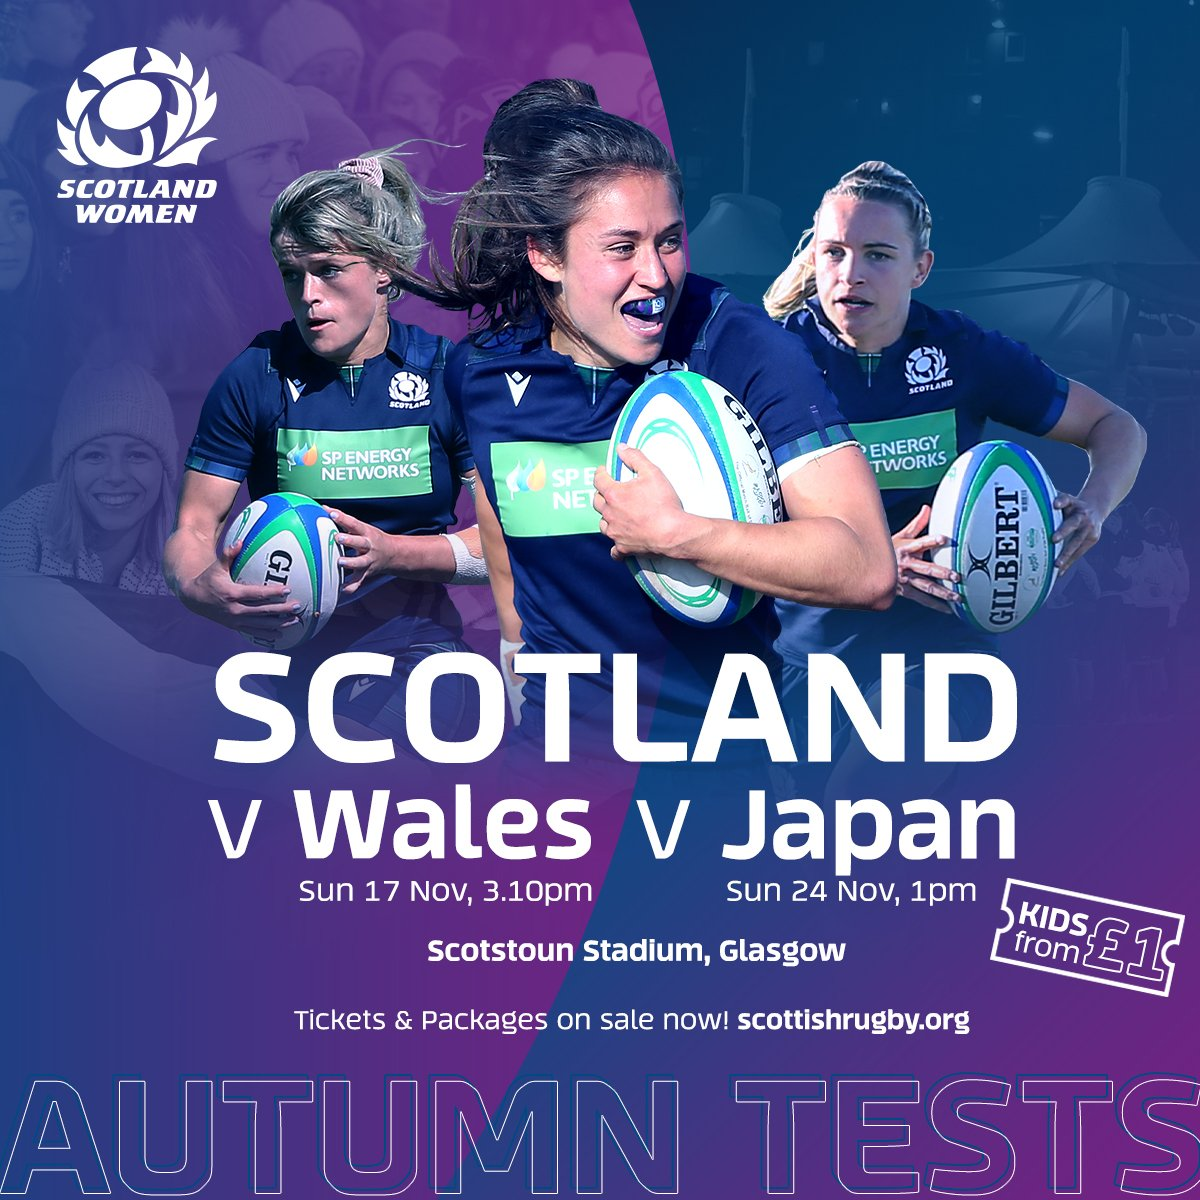 Catch Scotland in action this November at Scotstoun in two Autumn Tests! 🏴 4 & 2-match packages and individual match tickets on sale now 🎟️ bit.ly/Scot1920 #AsOne